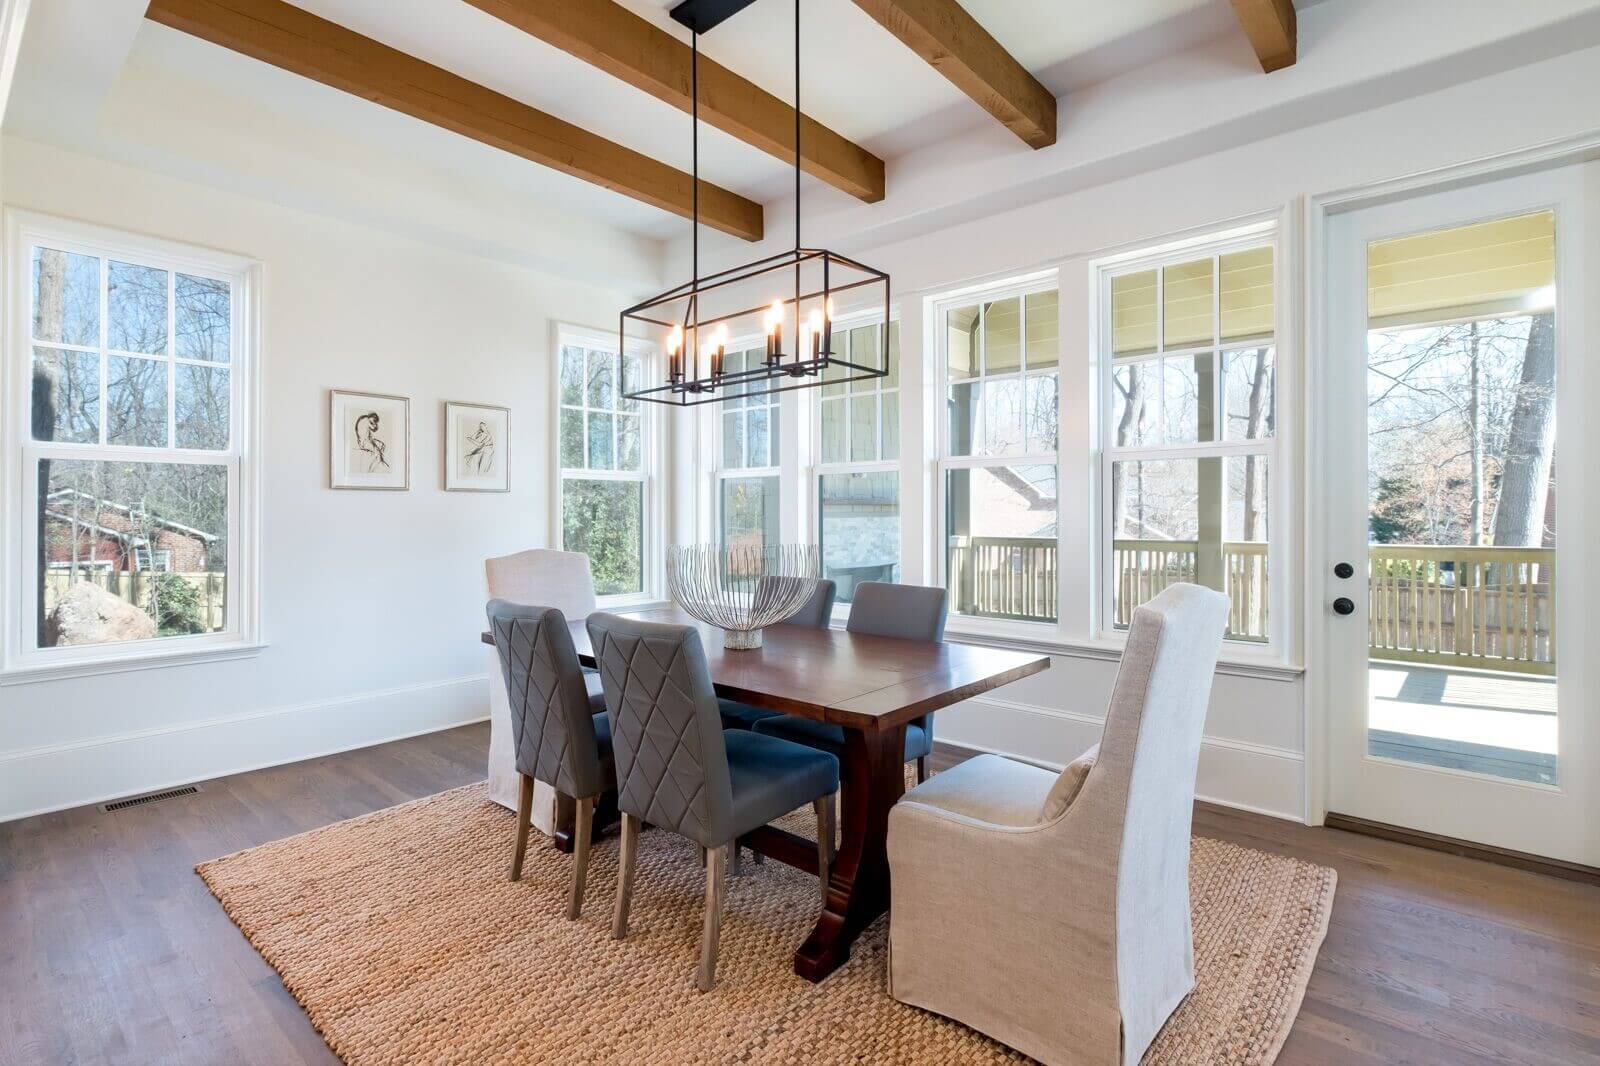 Dining room with plant-based hardwax oil wood finish on the hardwood flooring.